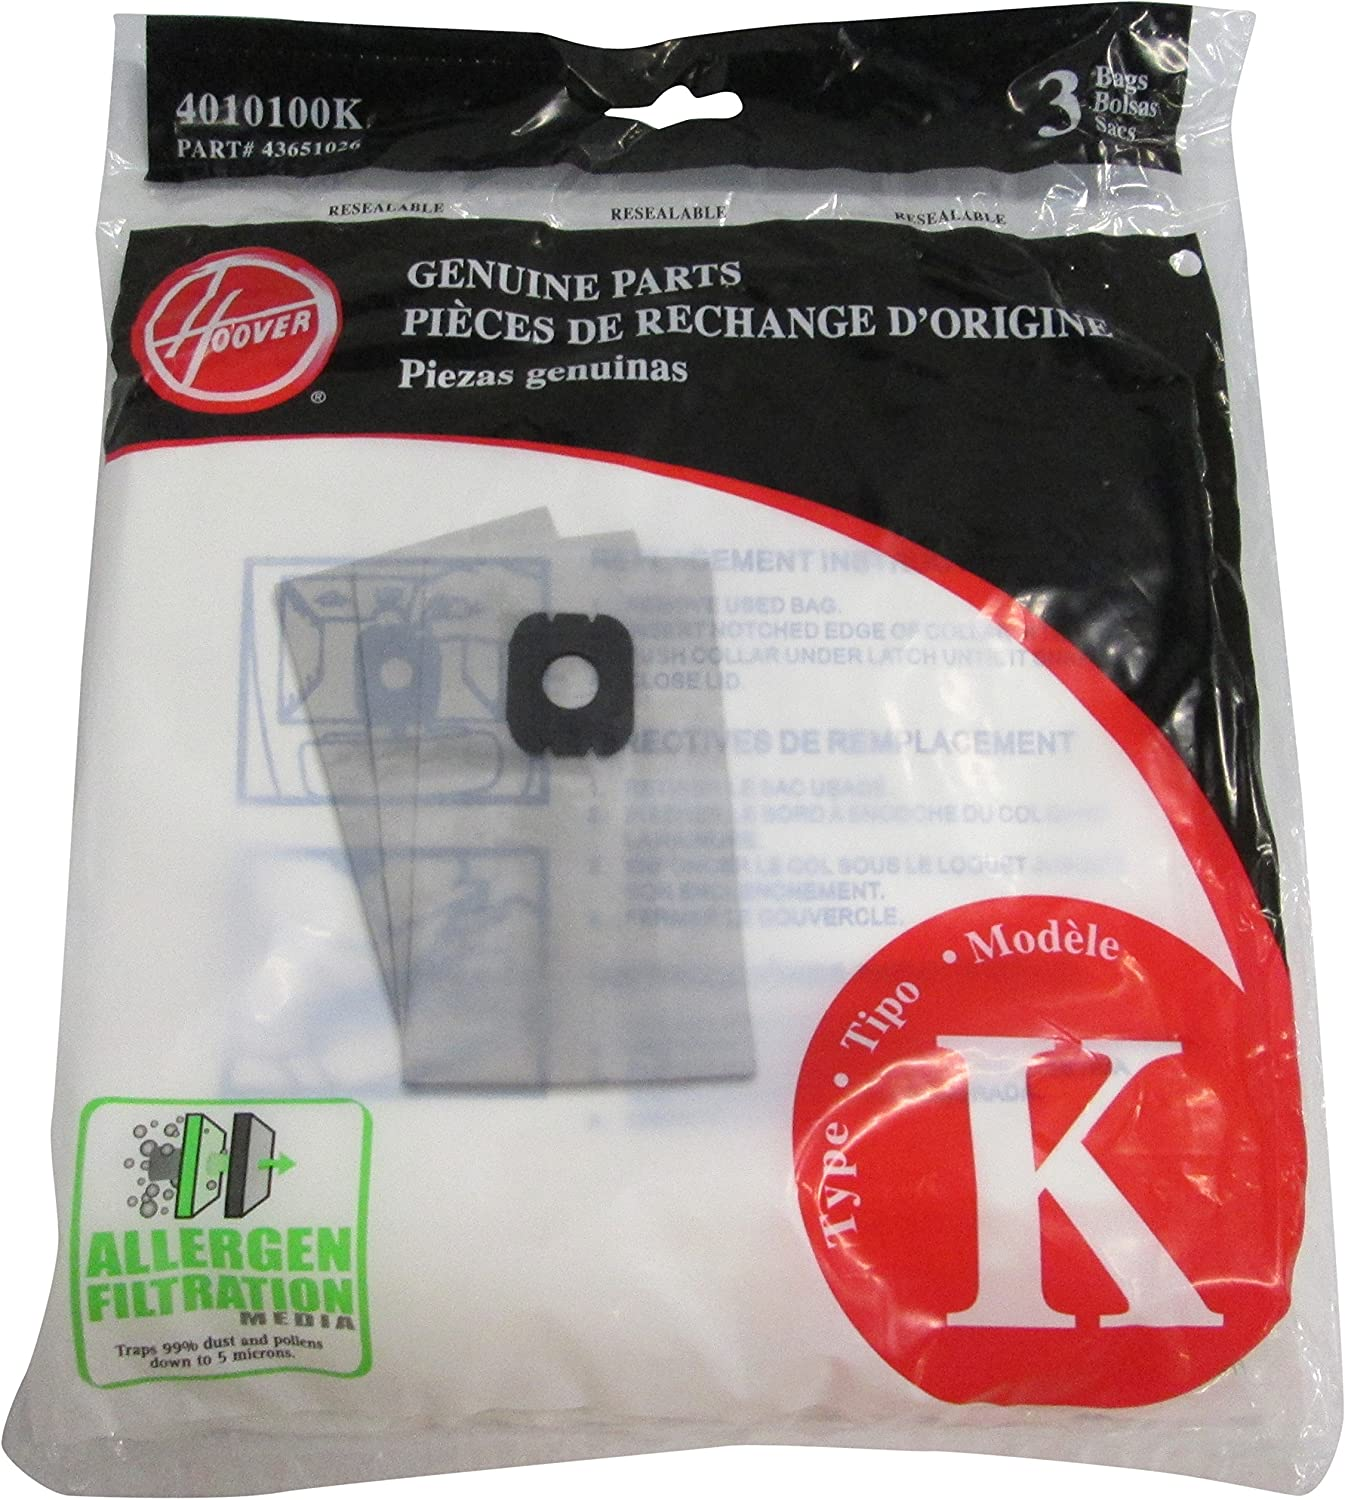 Hoover 3 Pack, Style K Allergen Filtration Vacuum Bags